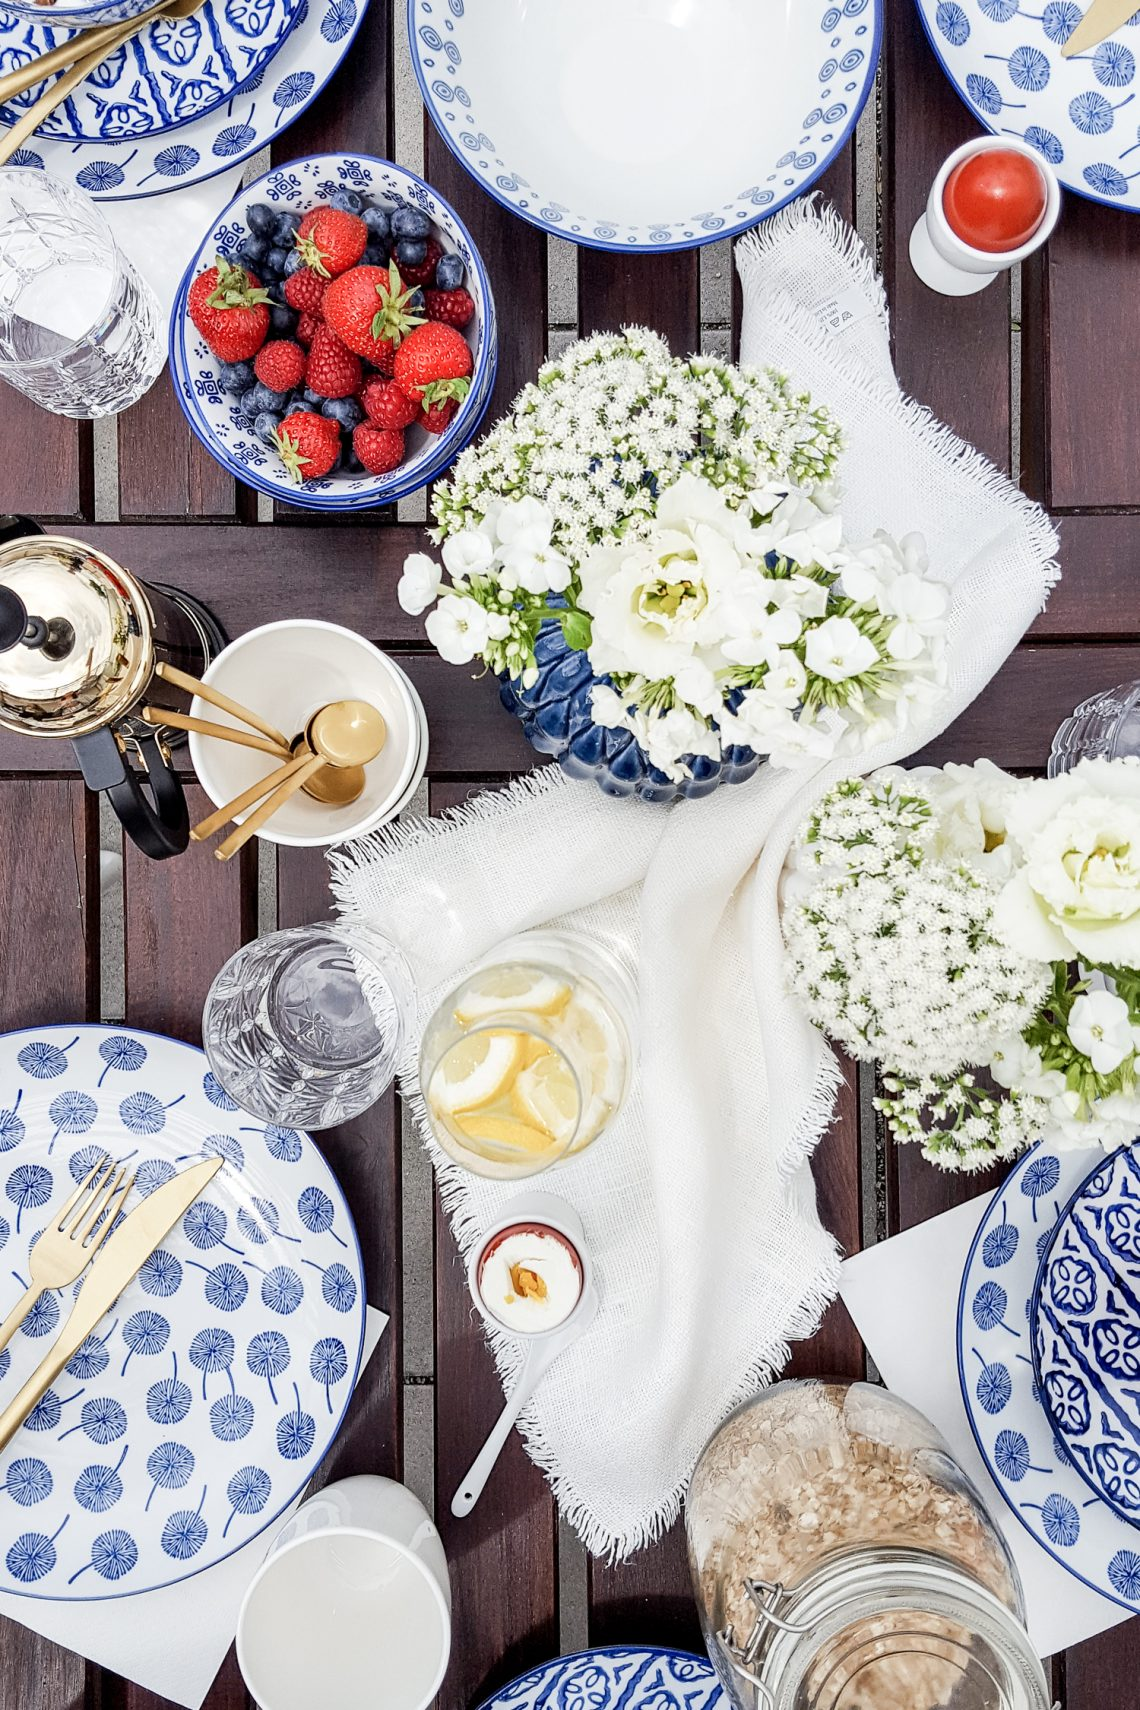 Brunch image from the gorgeous blog,  LoveDailyDose